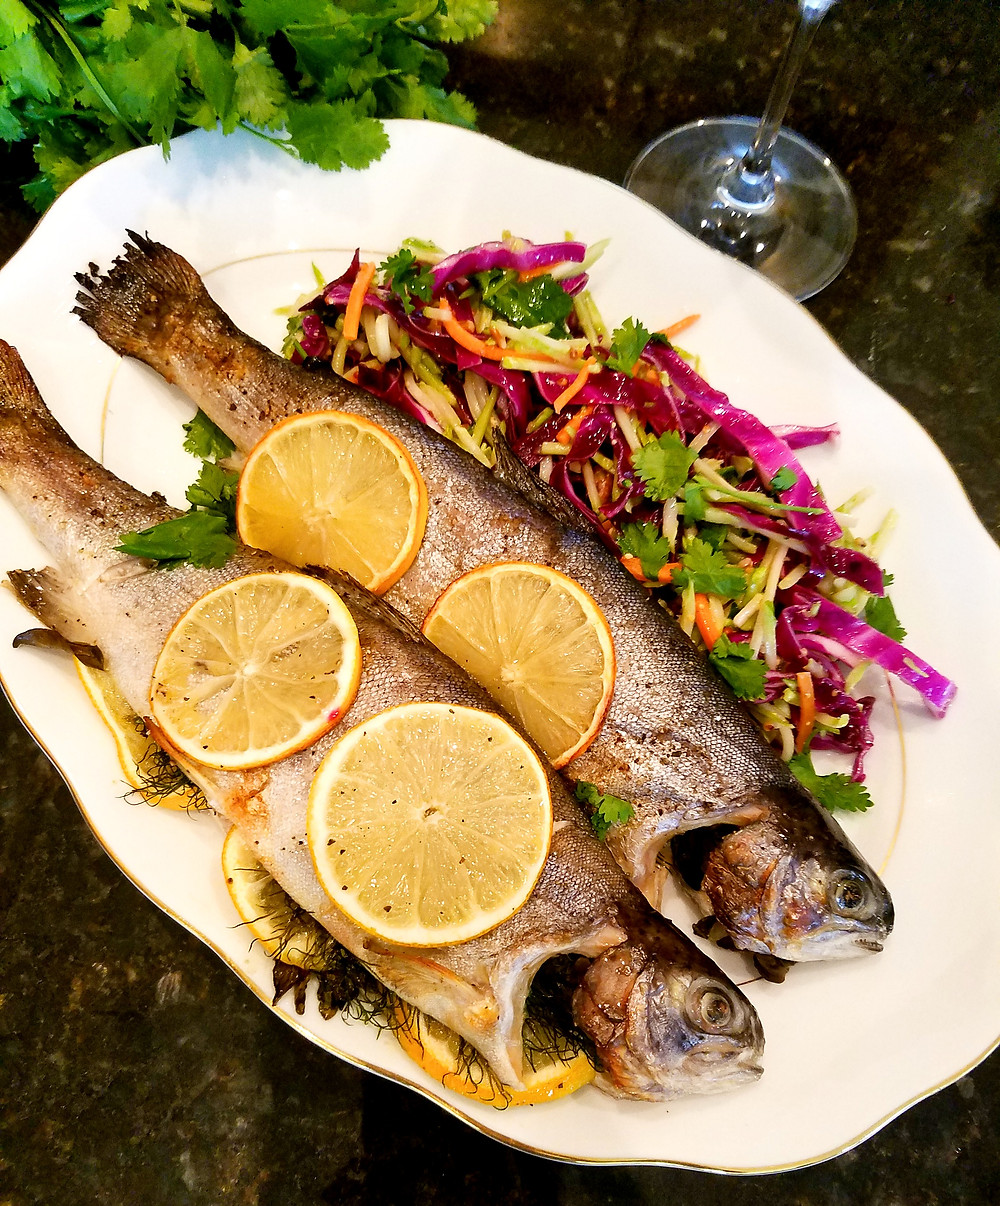 Broiled Rainbow Trout (Gluten-free, No soy/dairy/grains)